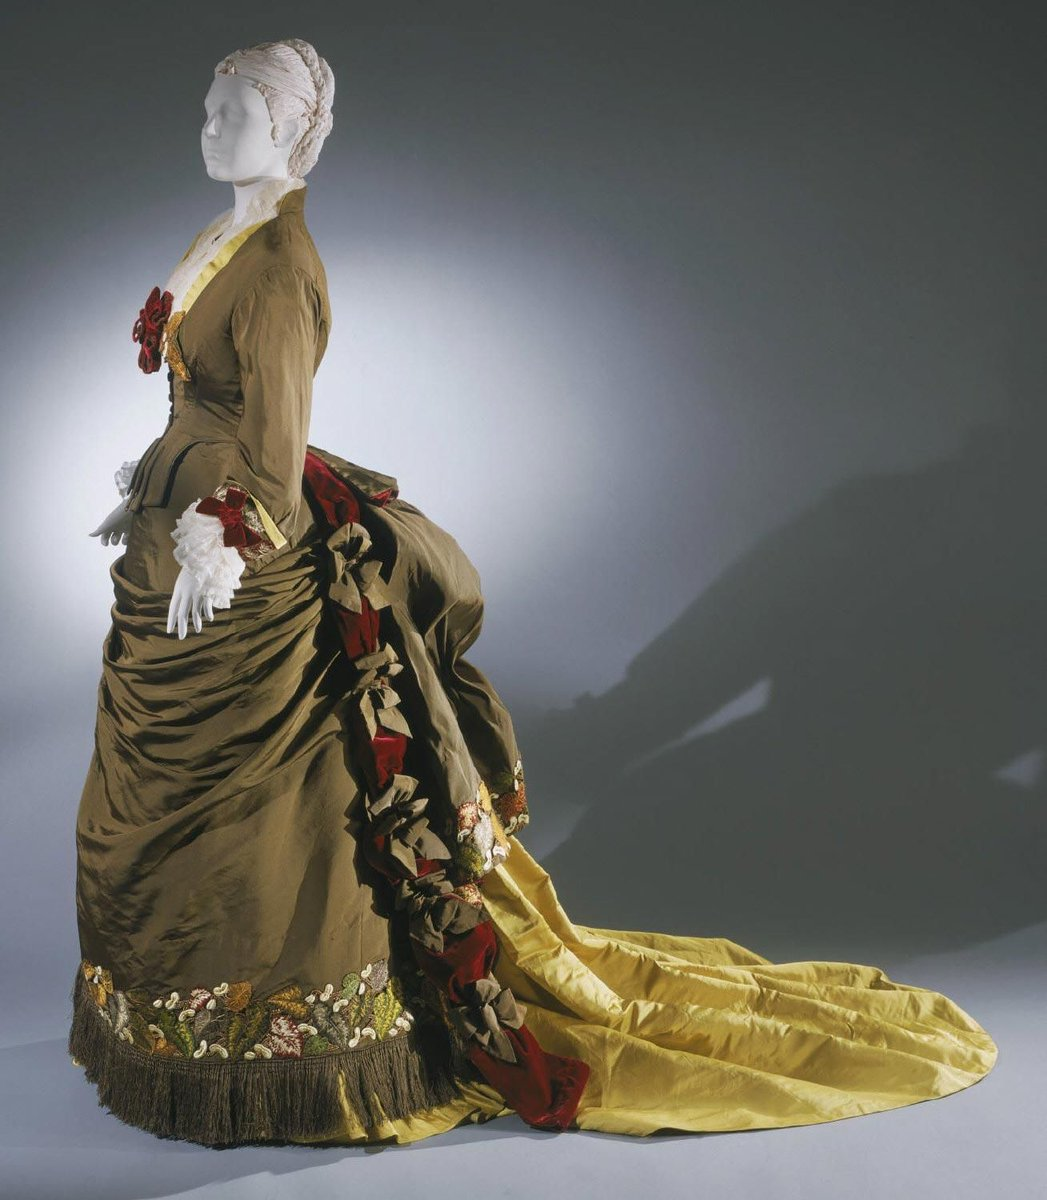 Silk faille with silk satin, silk velvet, embroidered appliqué, sheer pleated silk, silk fringe, and artificial flowers - Chartreuse gown with fringe at the bottom, falls of red roses, and a yellow train. PHL museum of art.